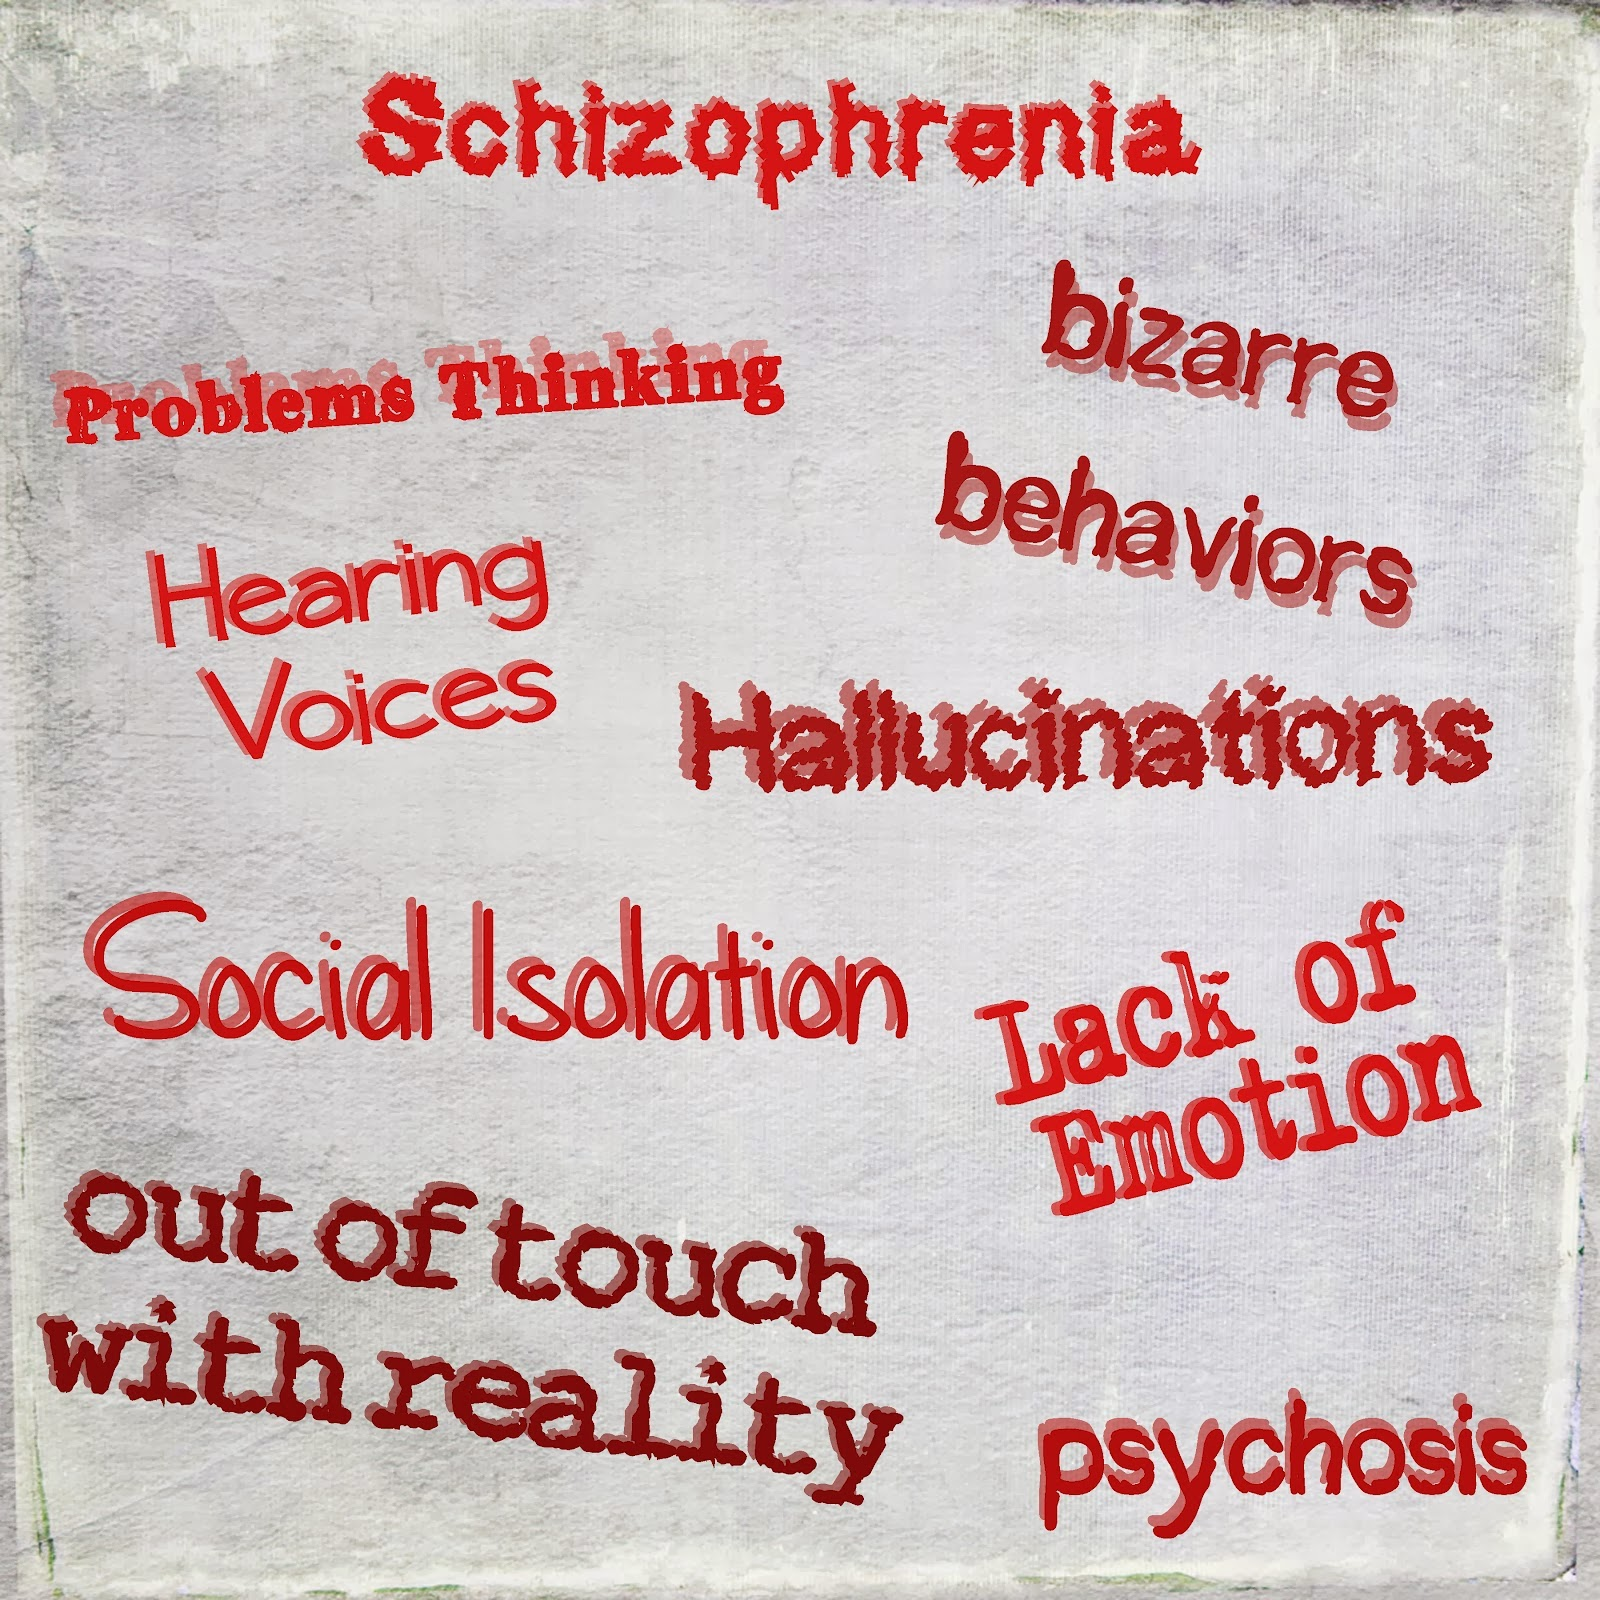 schizophrenia dating service 100% free online dating and matchmaking service for singles.